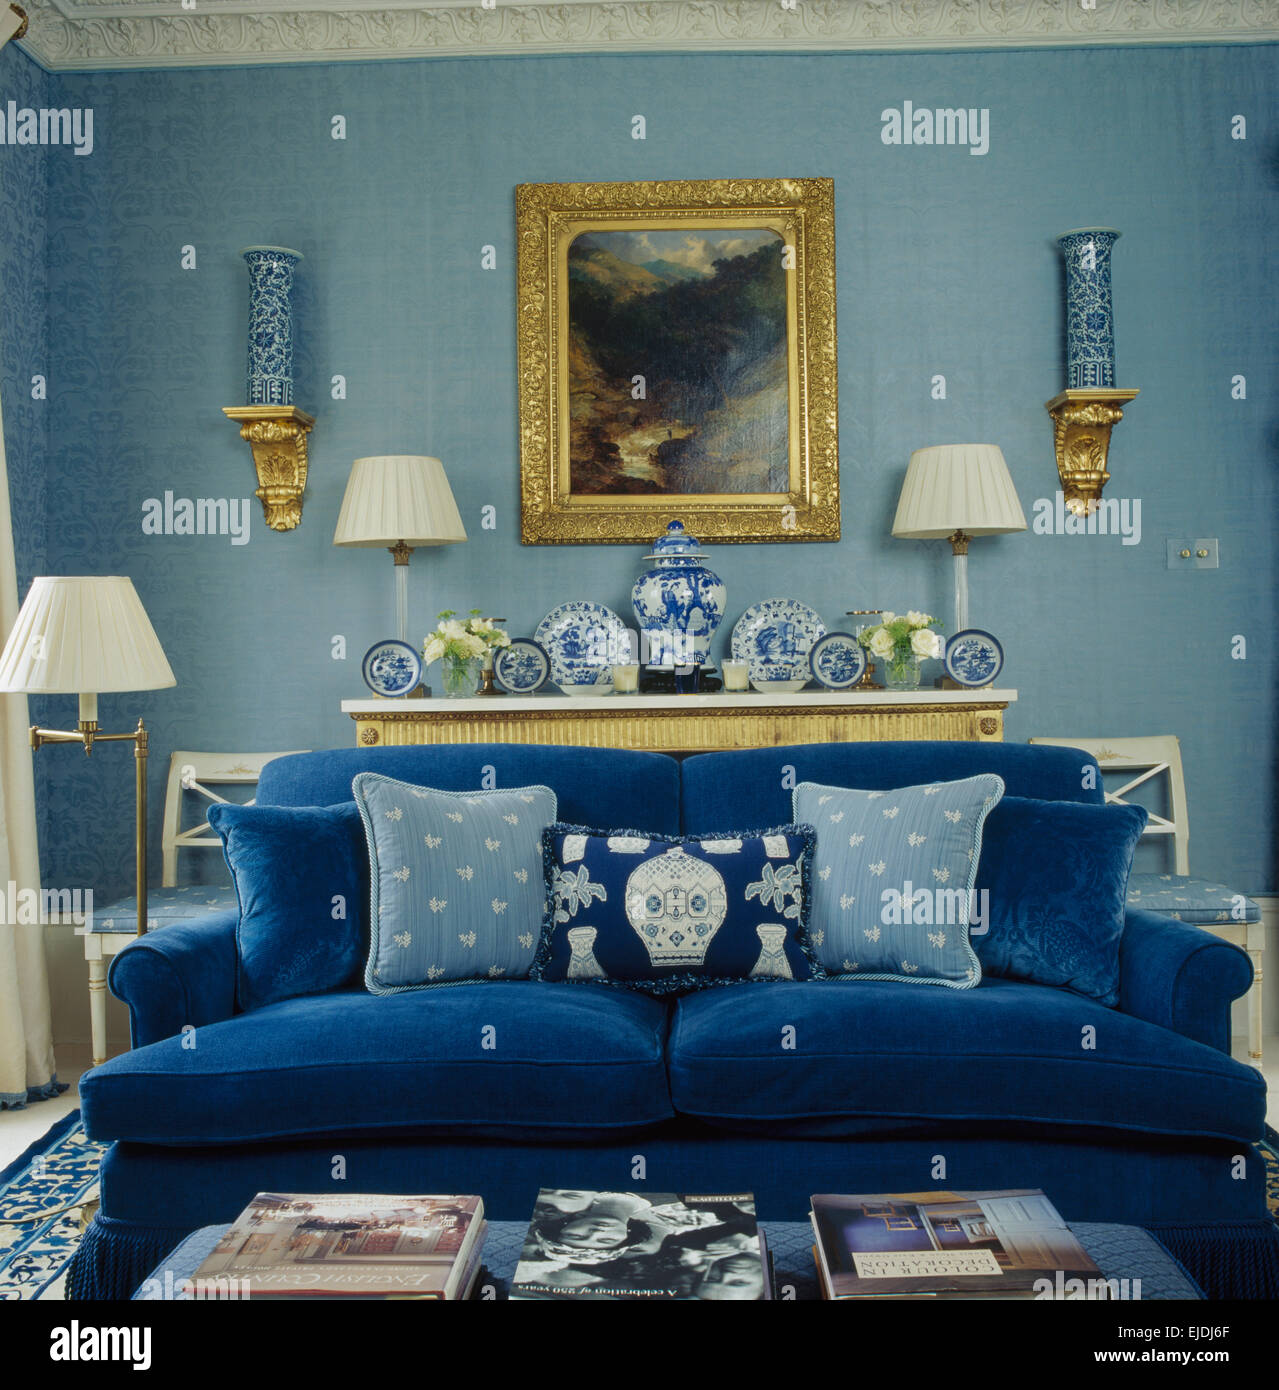 Gilt Framed Picture On Wall Behind Cobalt Blue Sofa With Toning Blue Stock Photo Alamy